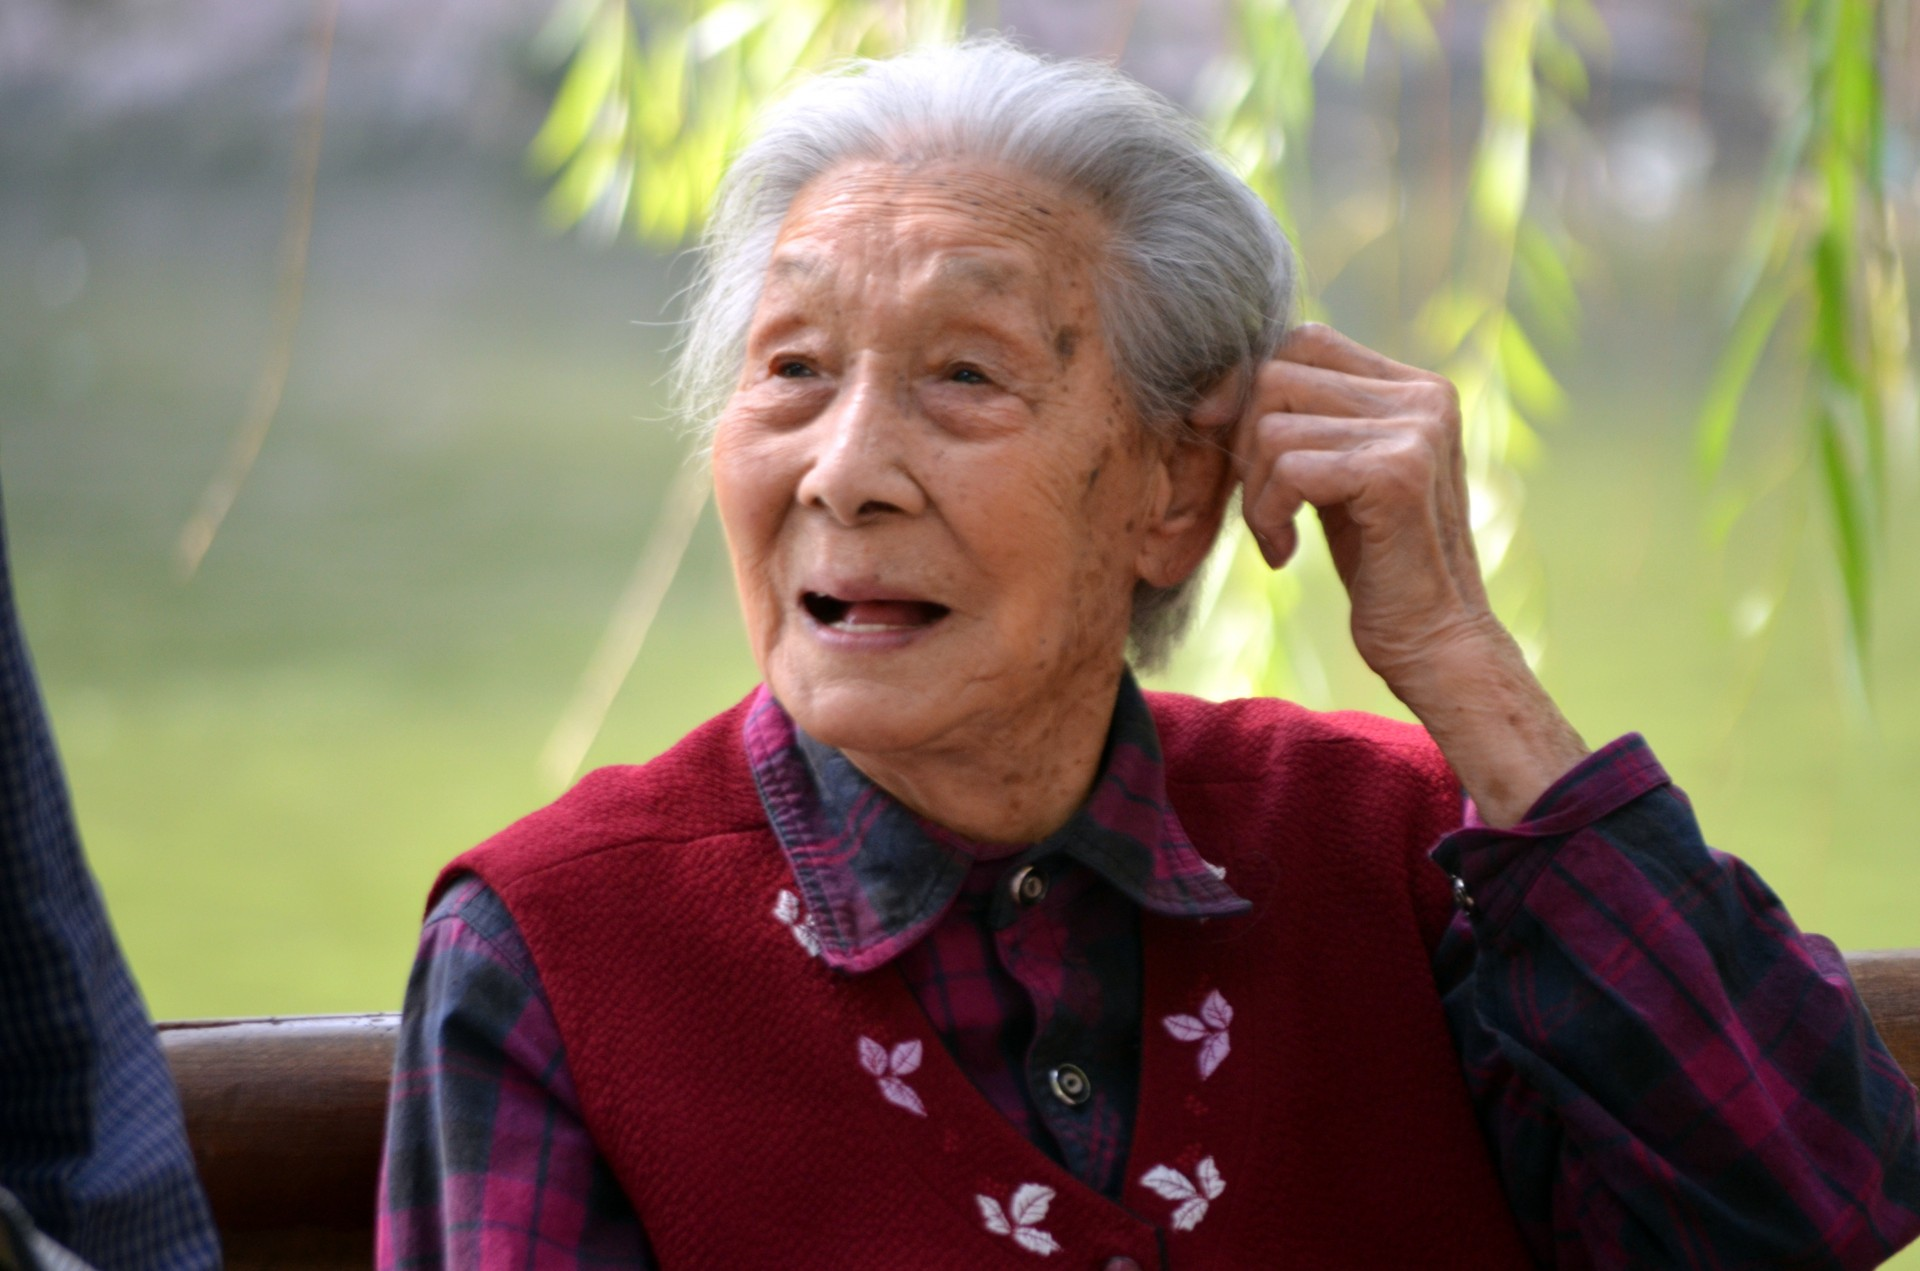 centenarian, late life care, 100 years old